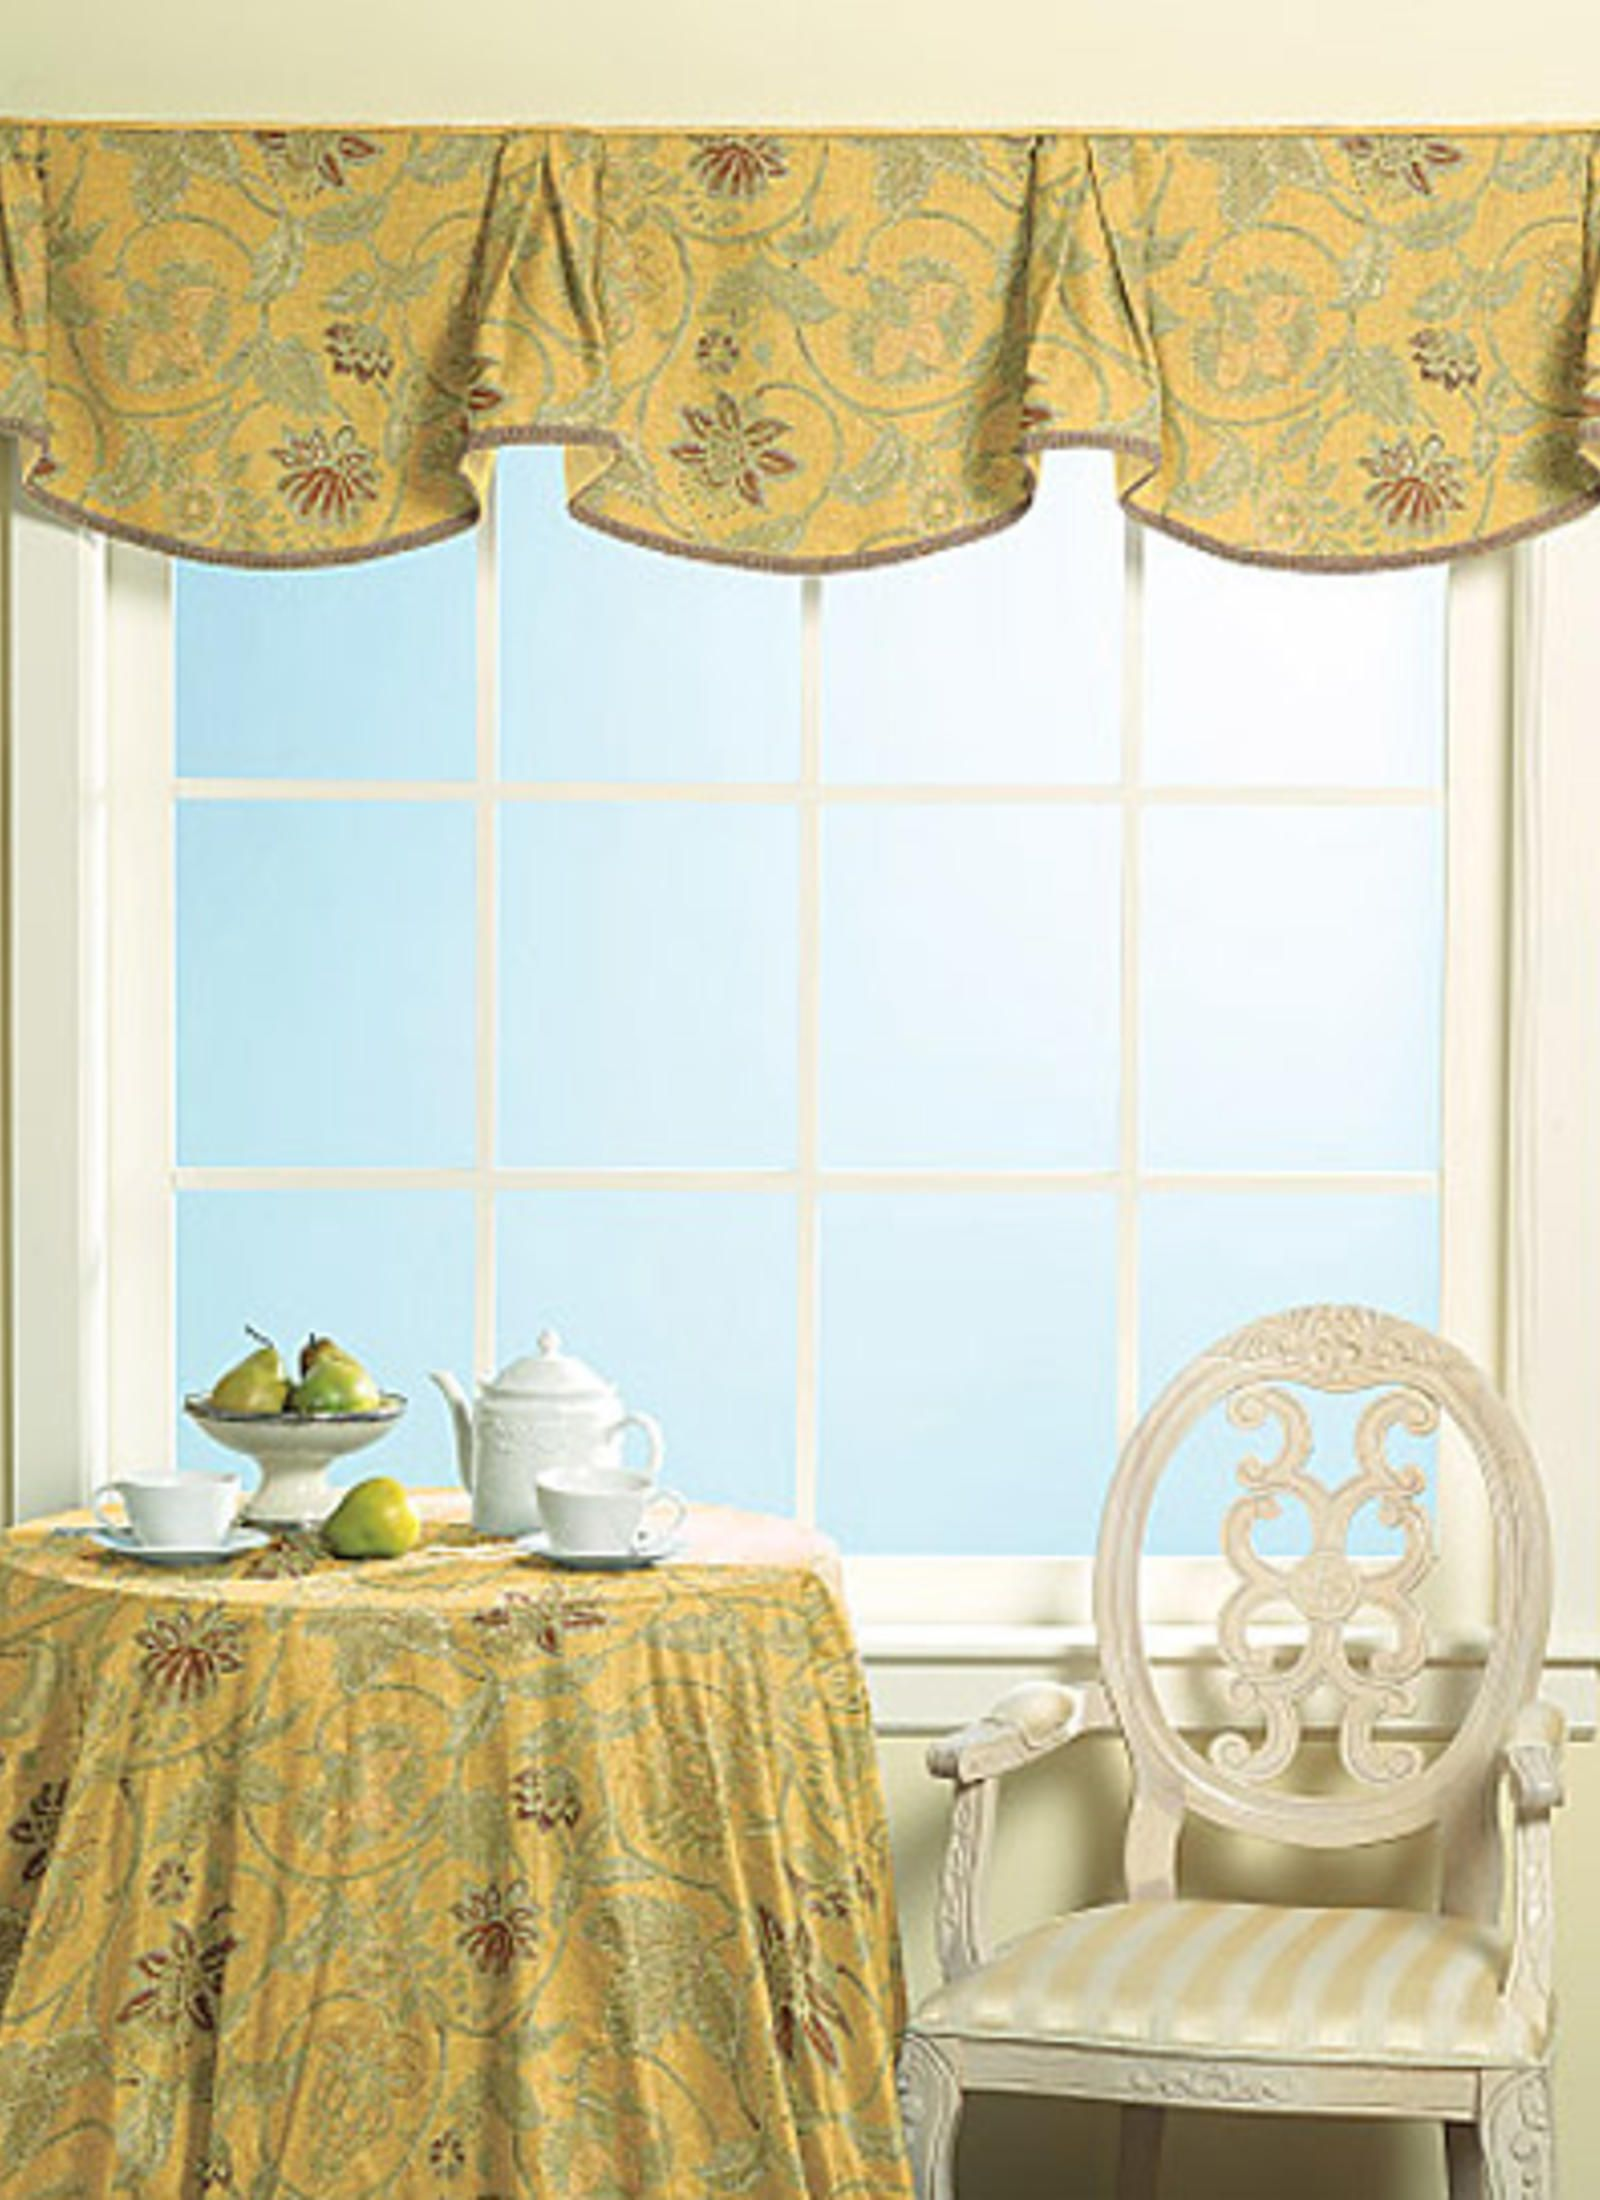 M5286 Valance Patterns Home Decor Drapes Blinds